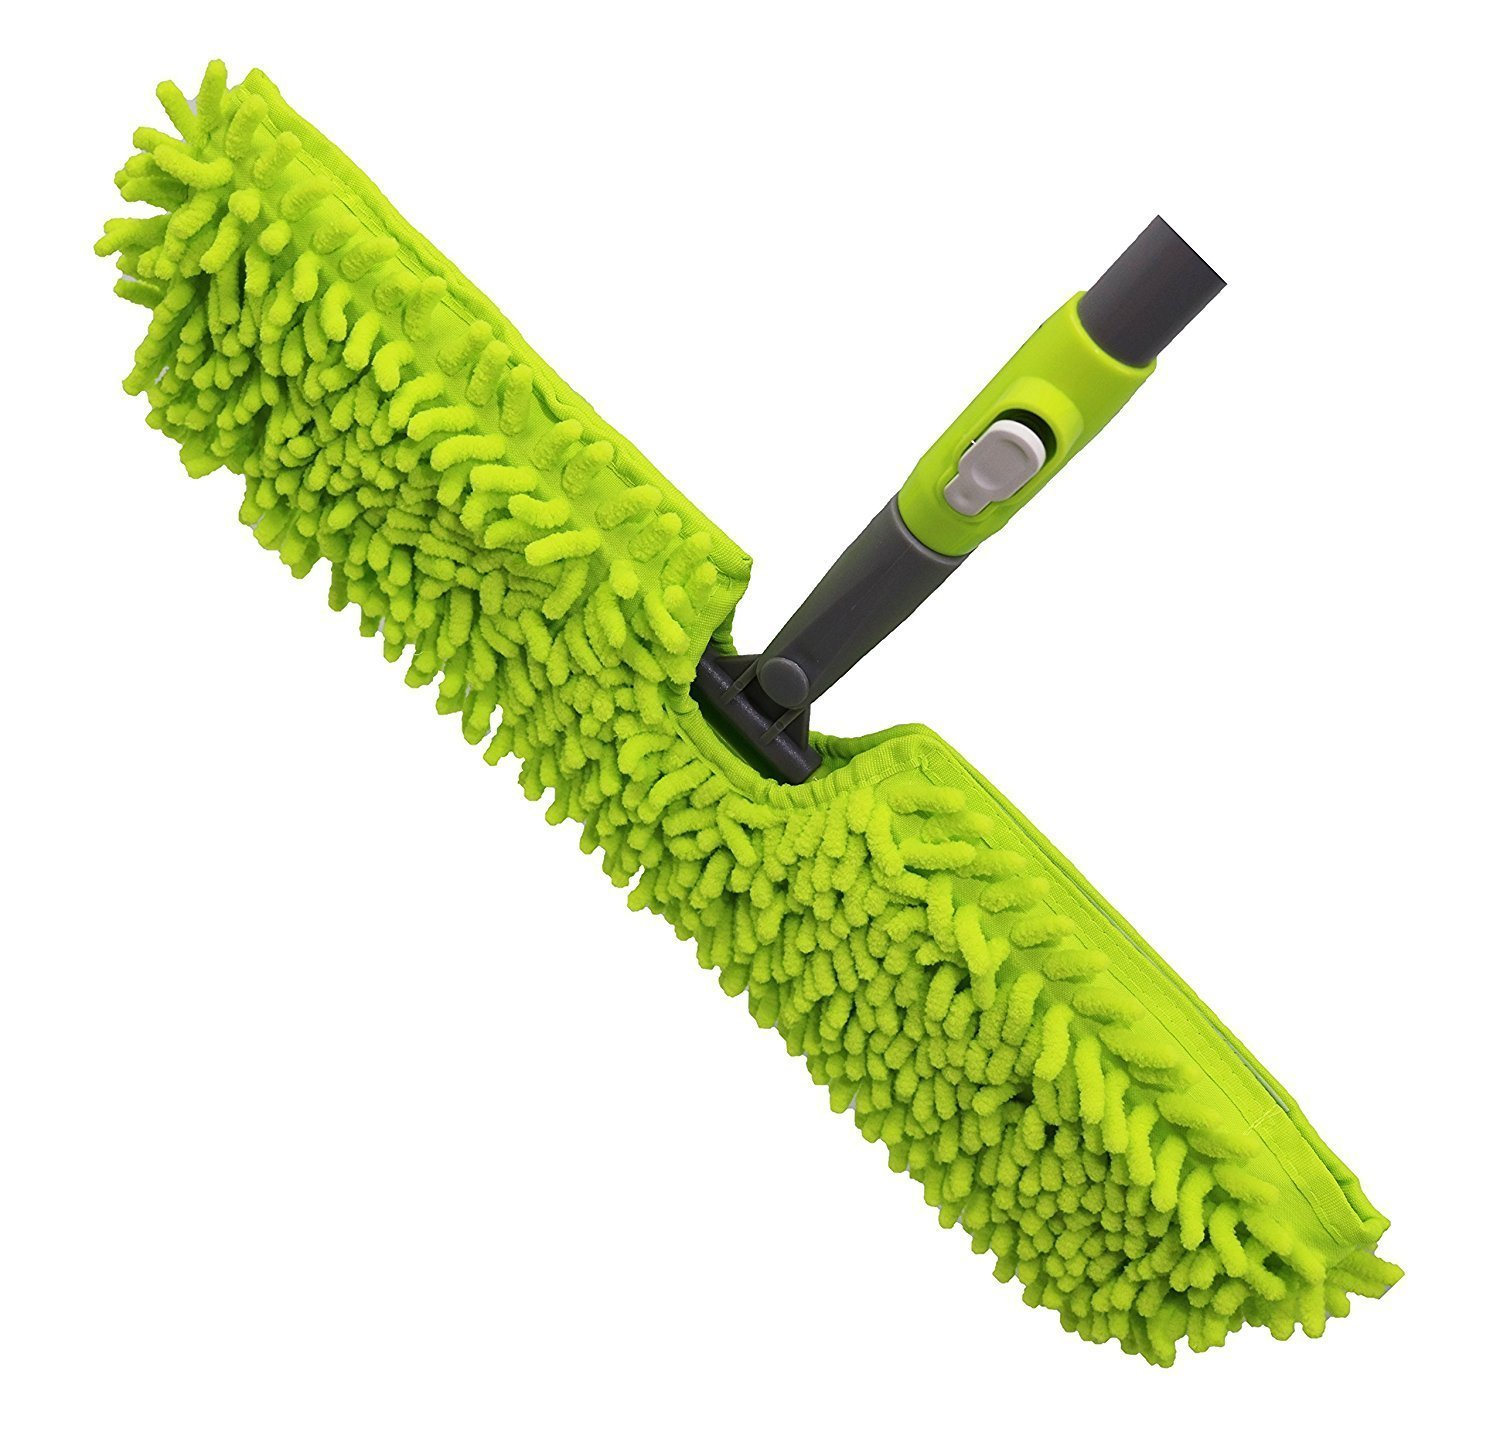 Microfiber Floor Mop-Duster | Dual Side Action Wet 'N Dry | Dusts and Mops | Telescopic and Flexible Pole Adjusts to 66.5'' High | by Homiom (Mop)